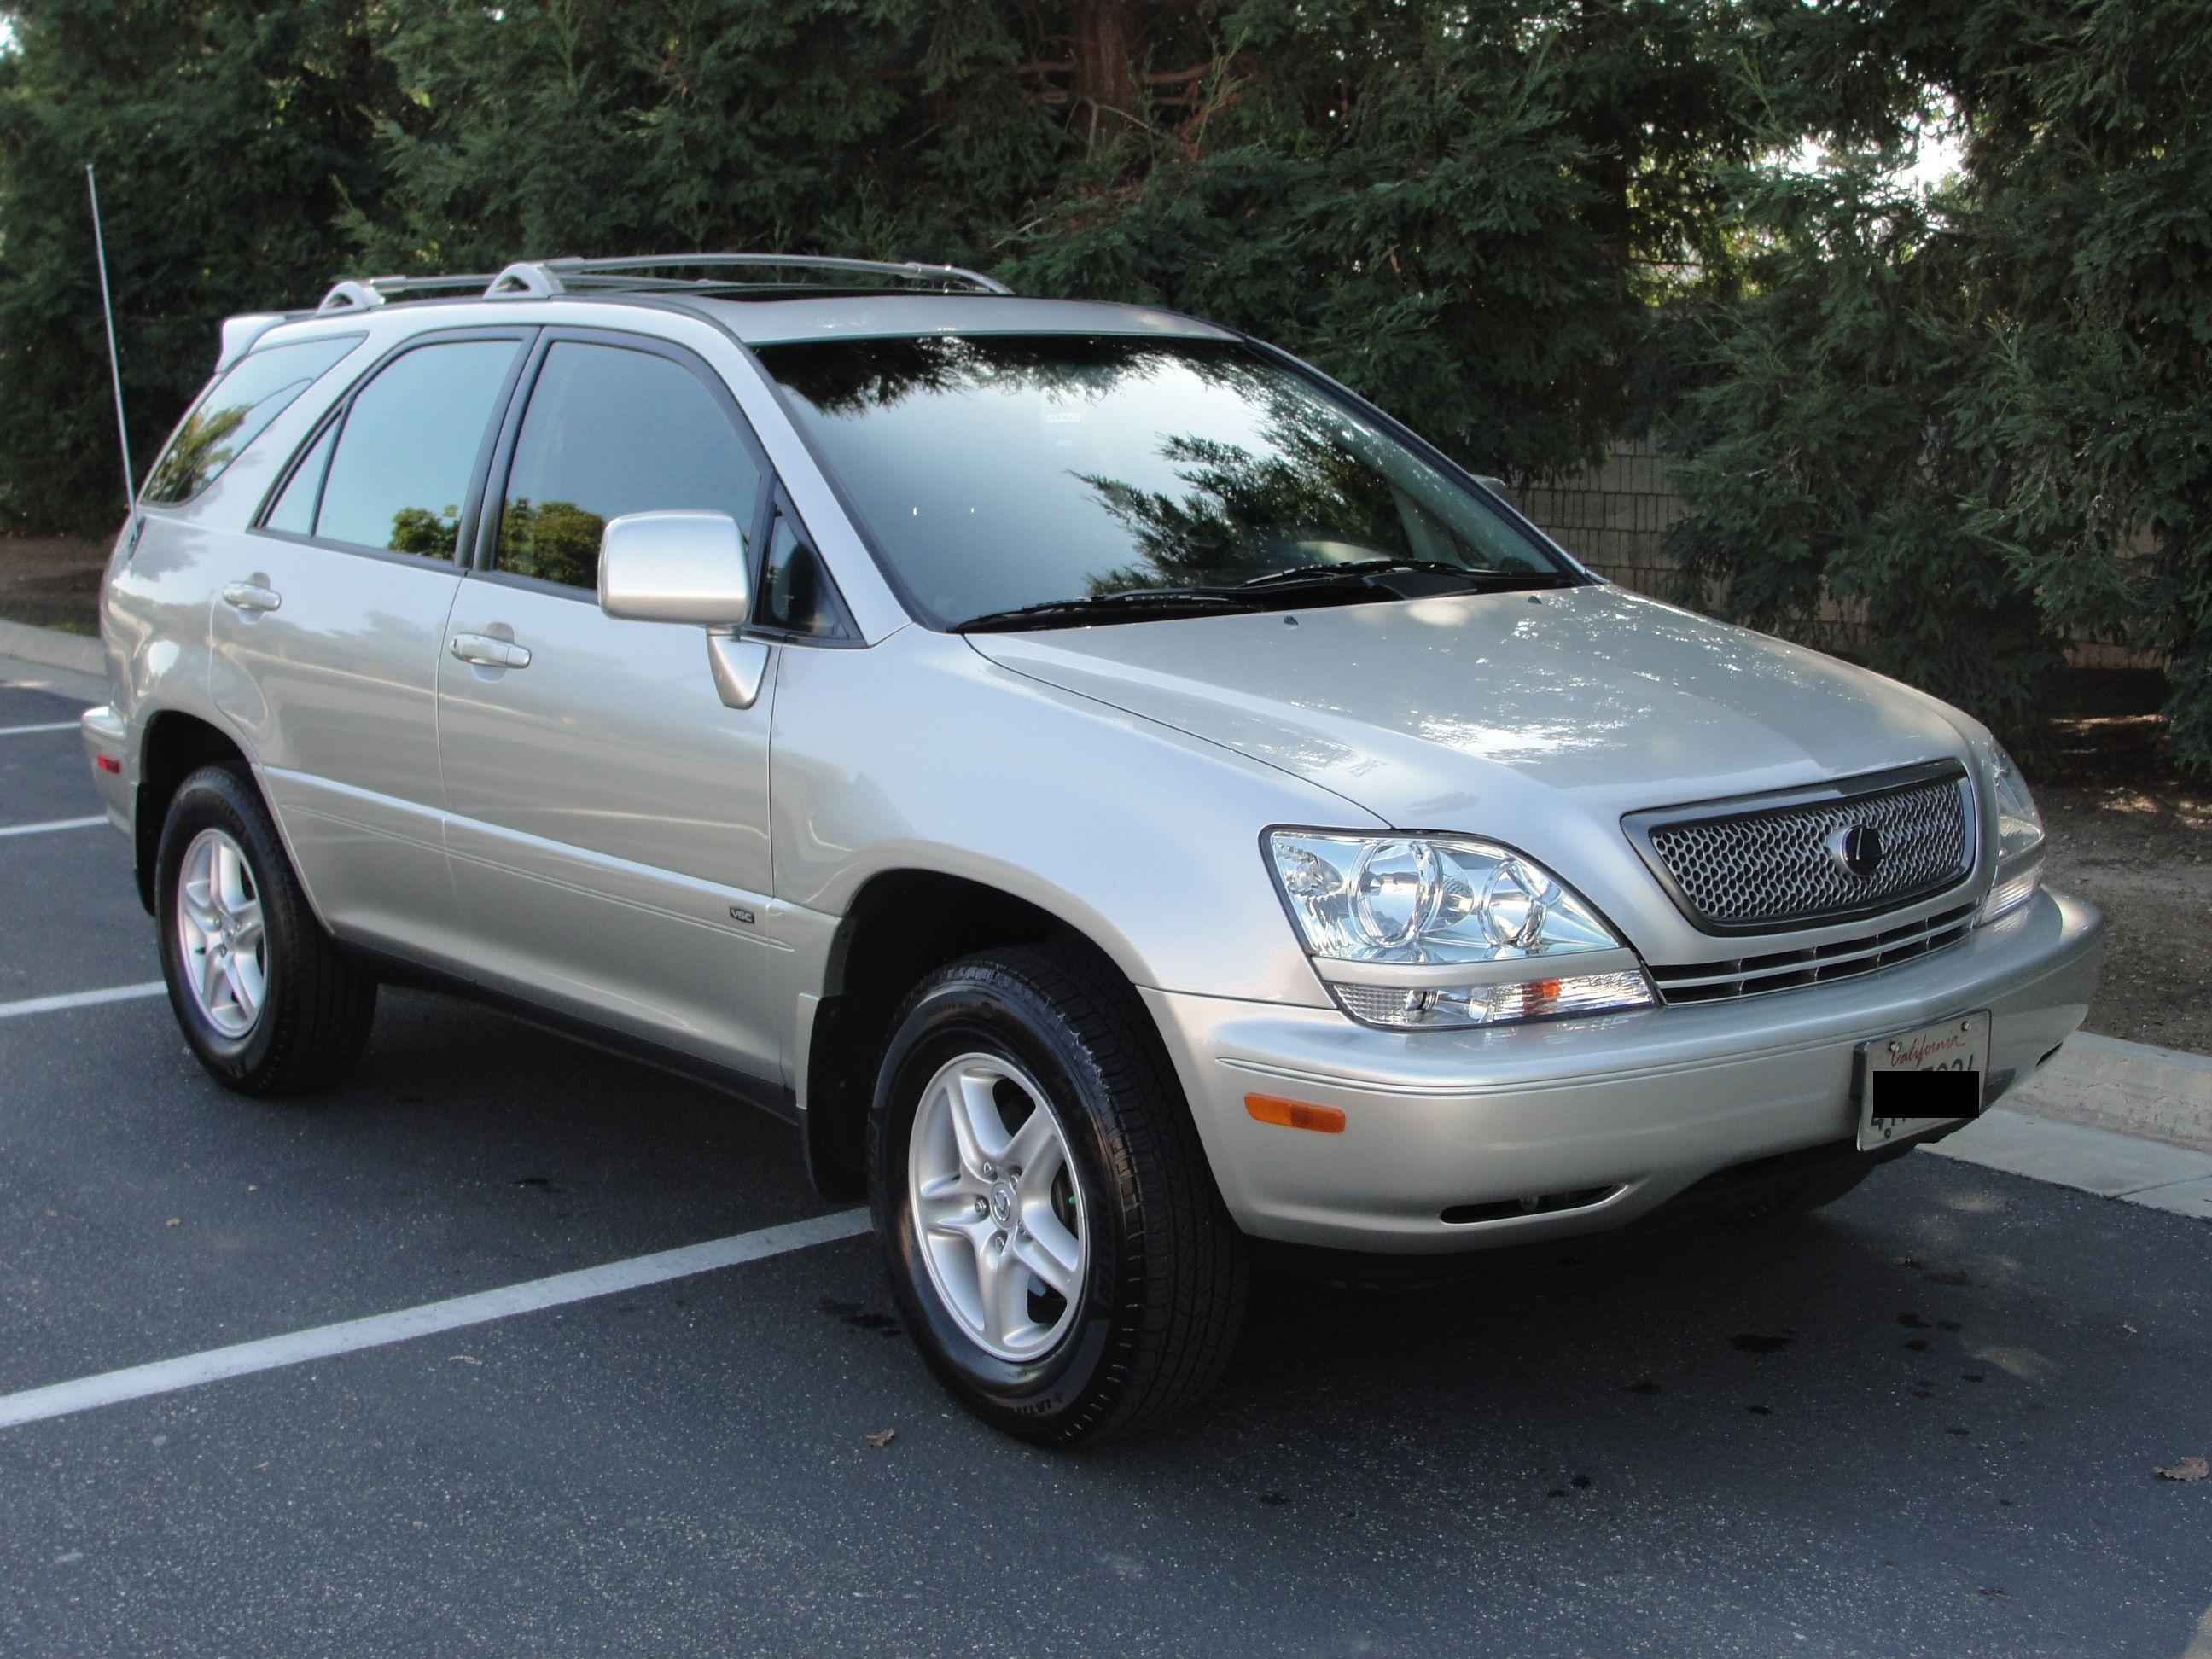 Used 2001 Lexus RX 300 Pricing & Features | Edmunds